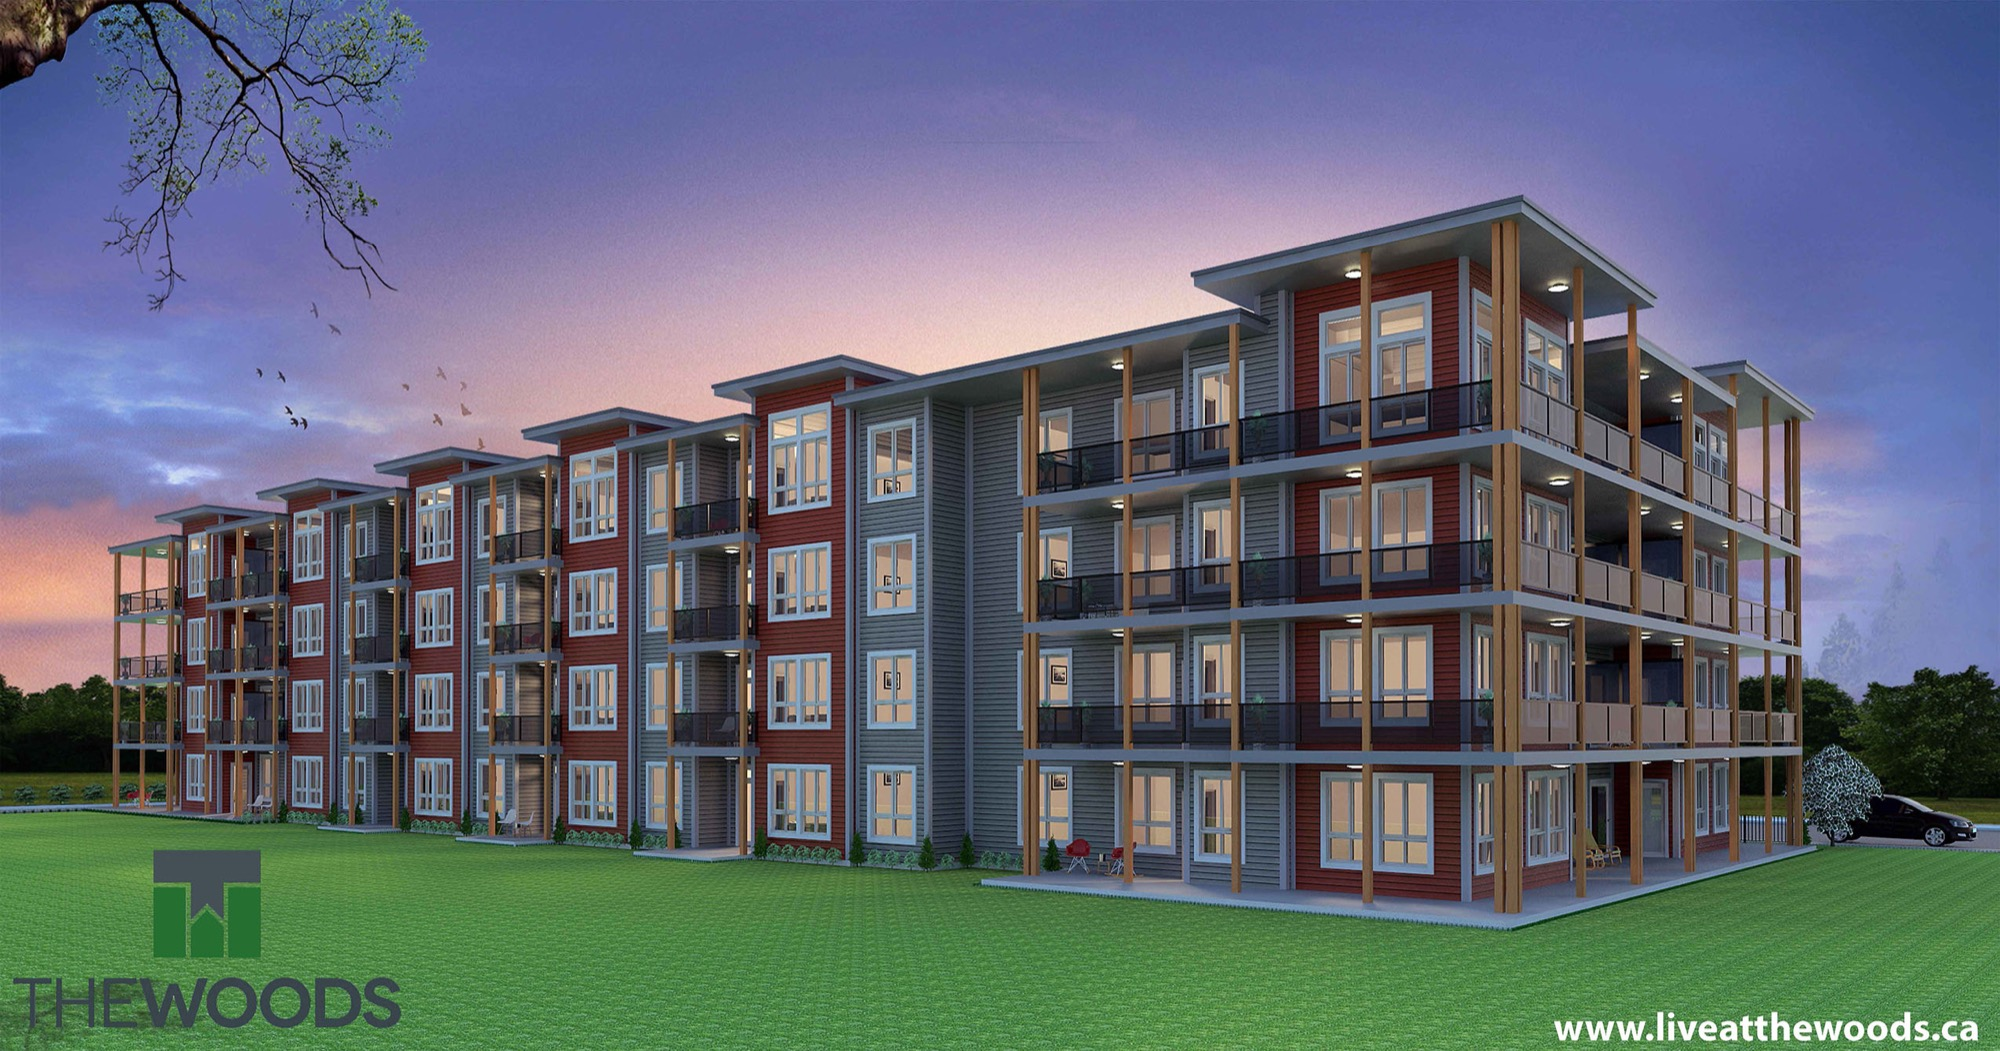 The new south-end subdivision called The Woods will include four apartment buildings (174 suites) and 22 townhomes.